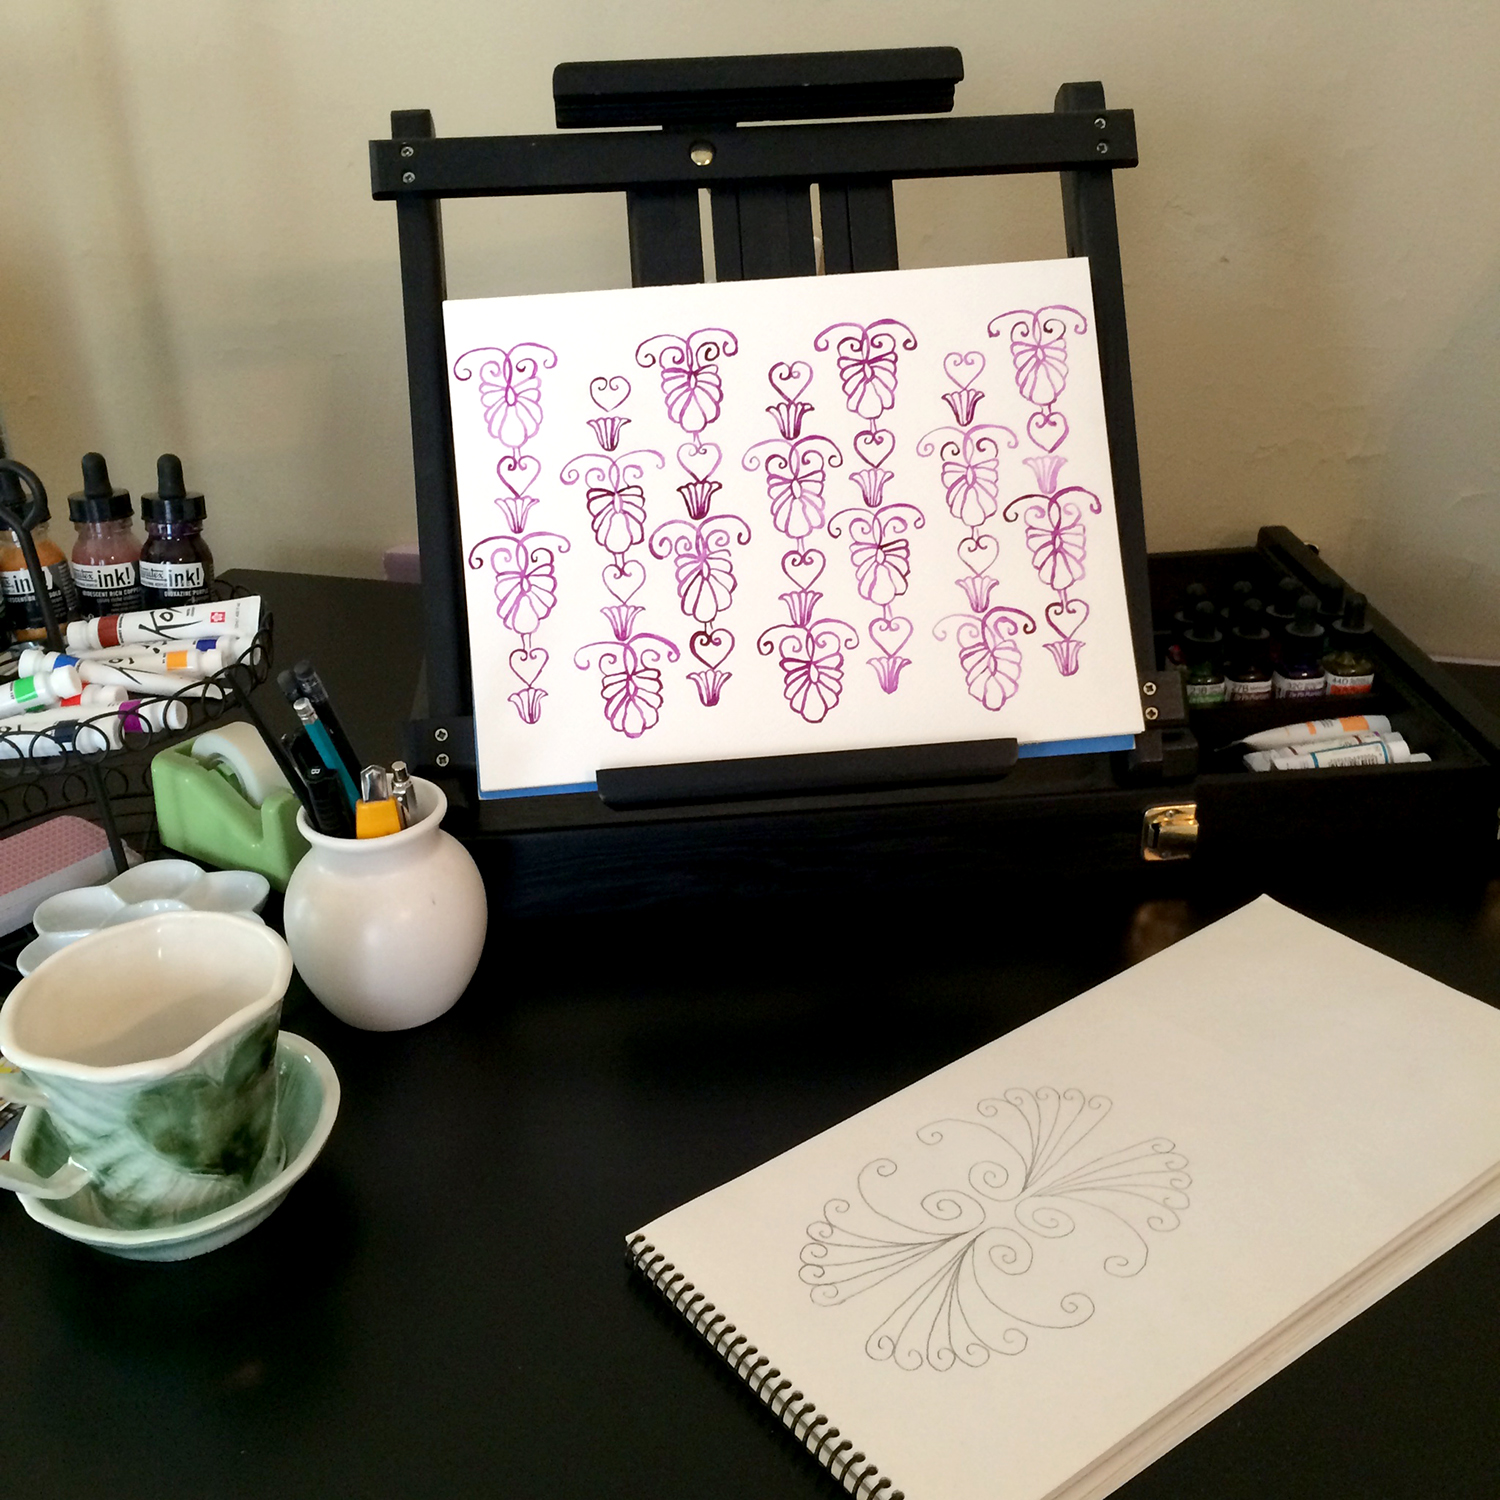 Using watercolor to repeat motifs keeps the element of hand drawing alive